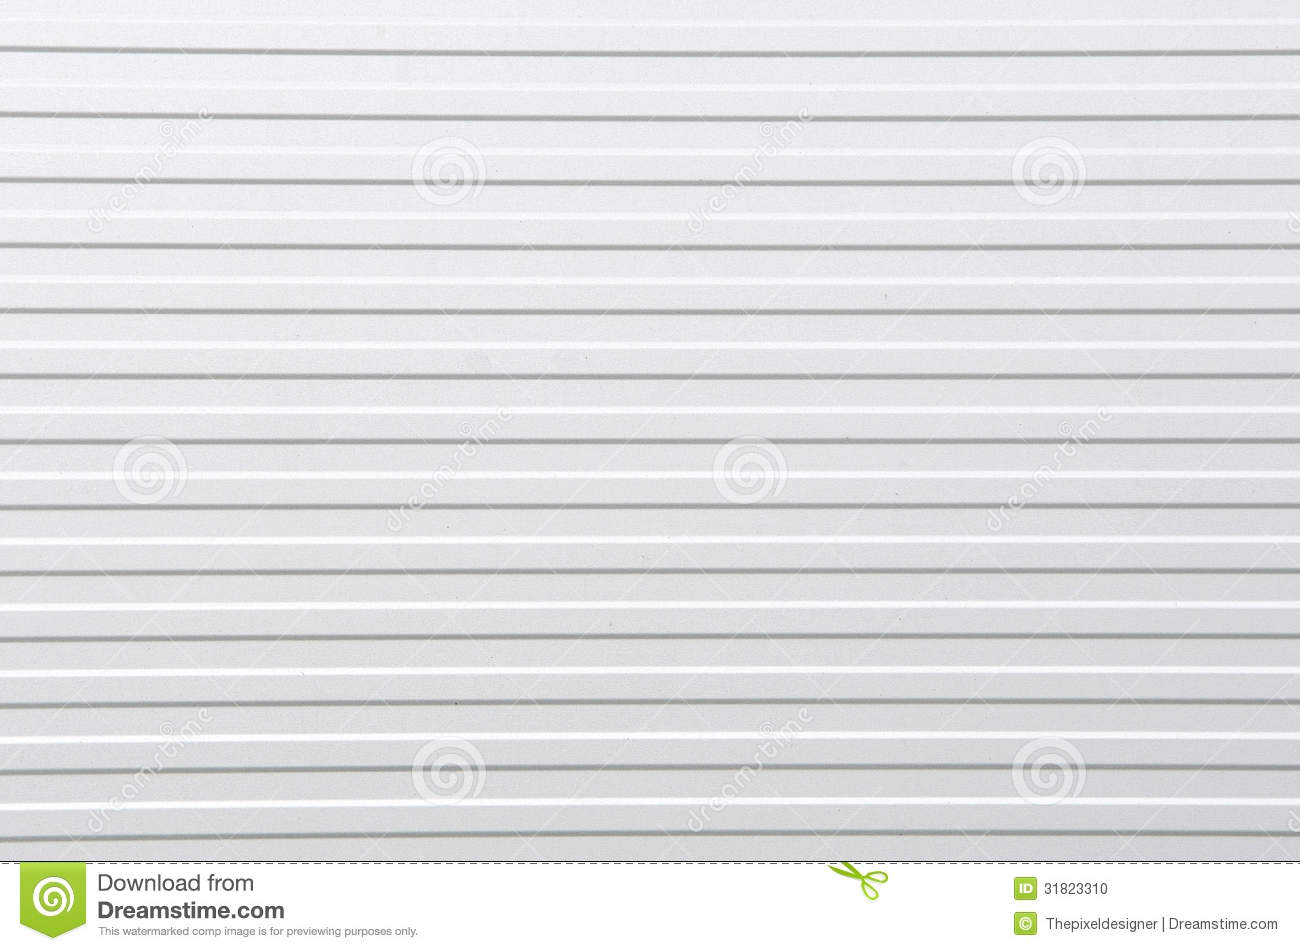 Corrugated sheet texture or background high resolution color image